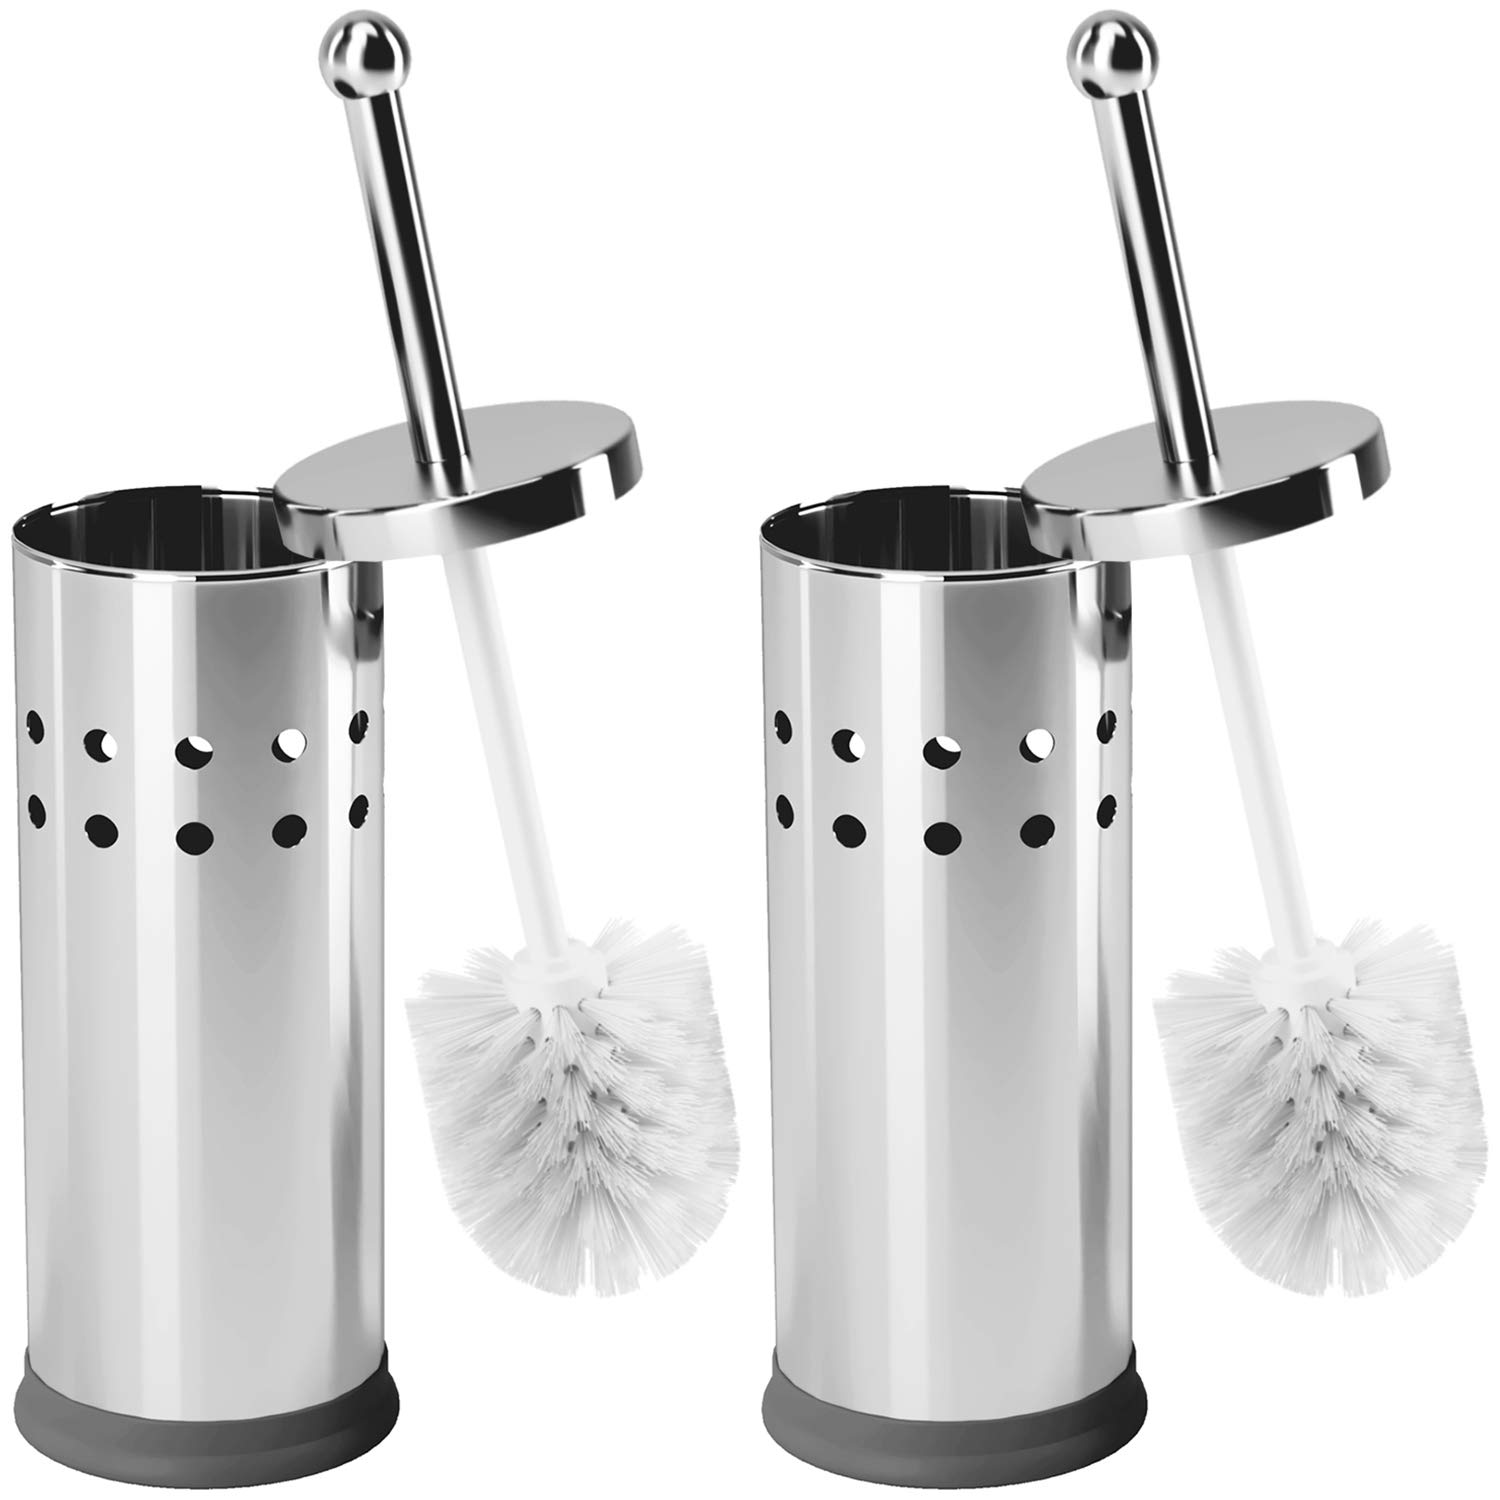 Home Intuition Vented Toilet Brush and Holder, Chrome, 2 Pack